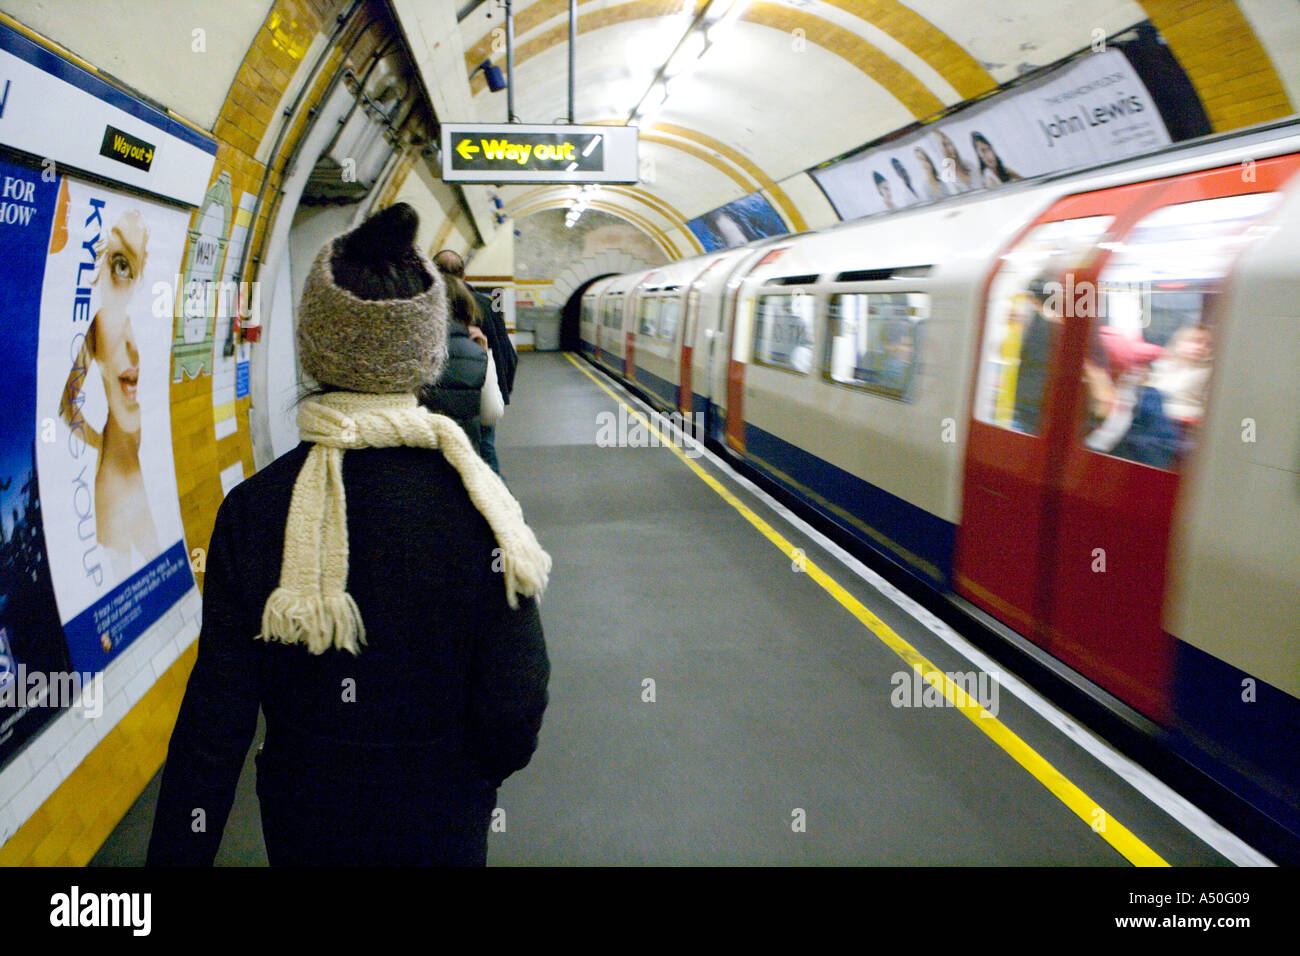 Moving Tube train and commuters London England Stock Photo